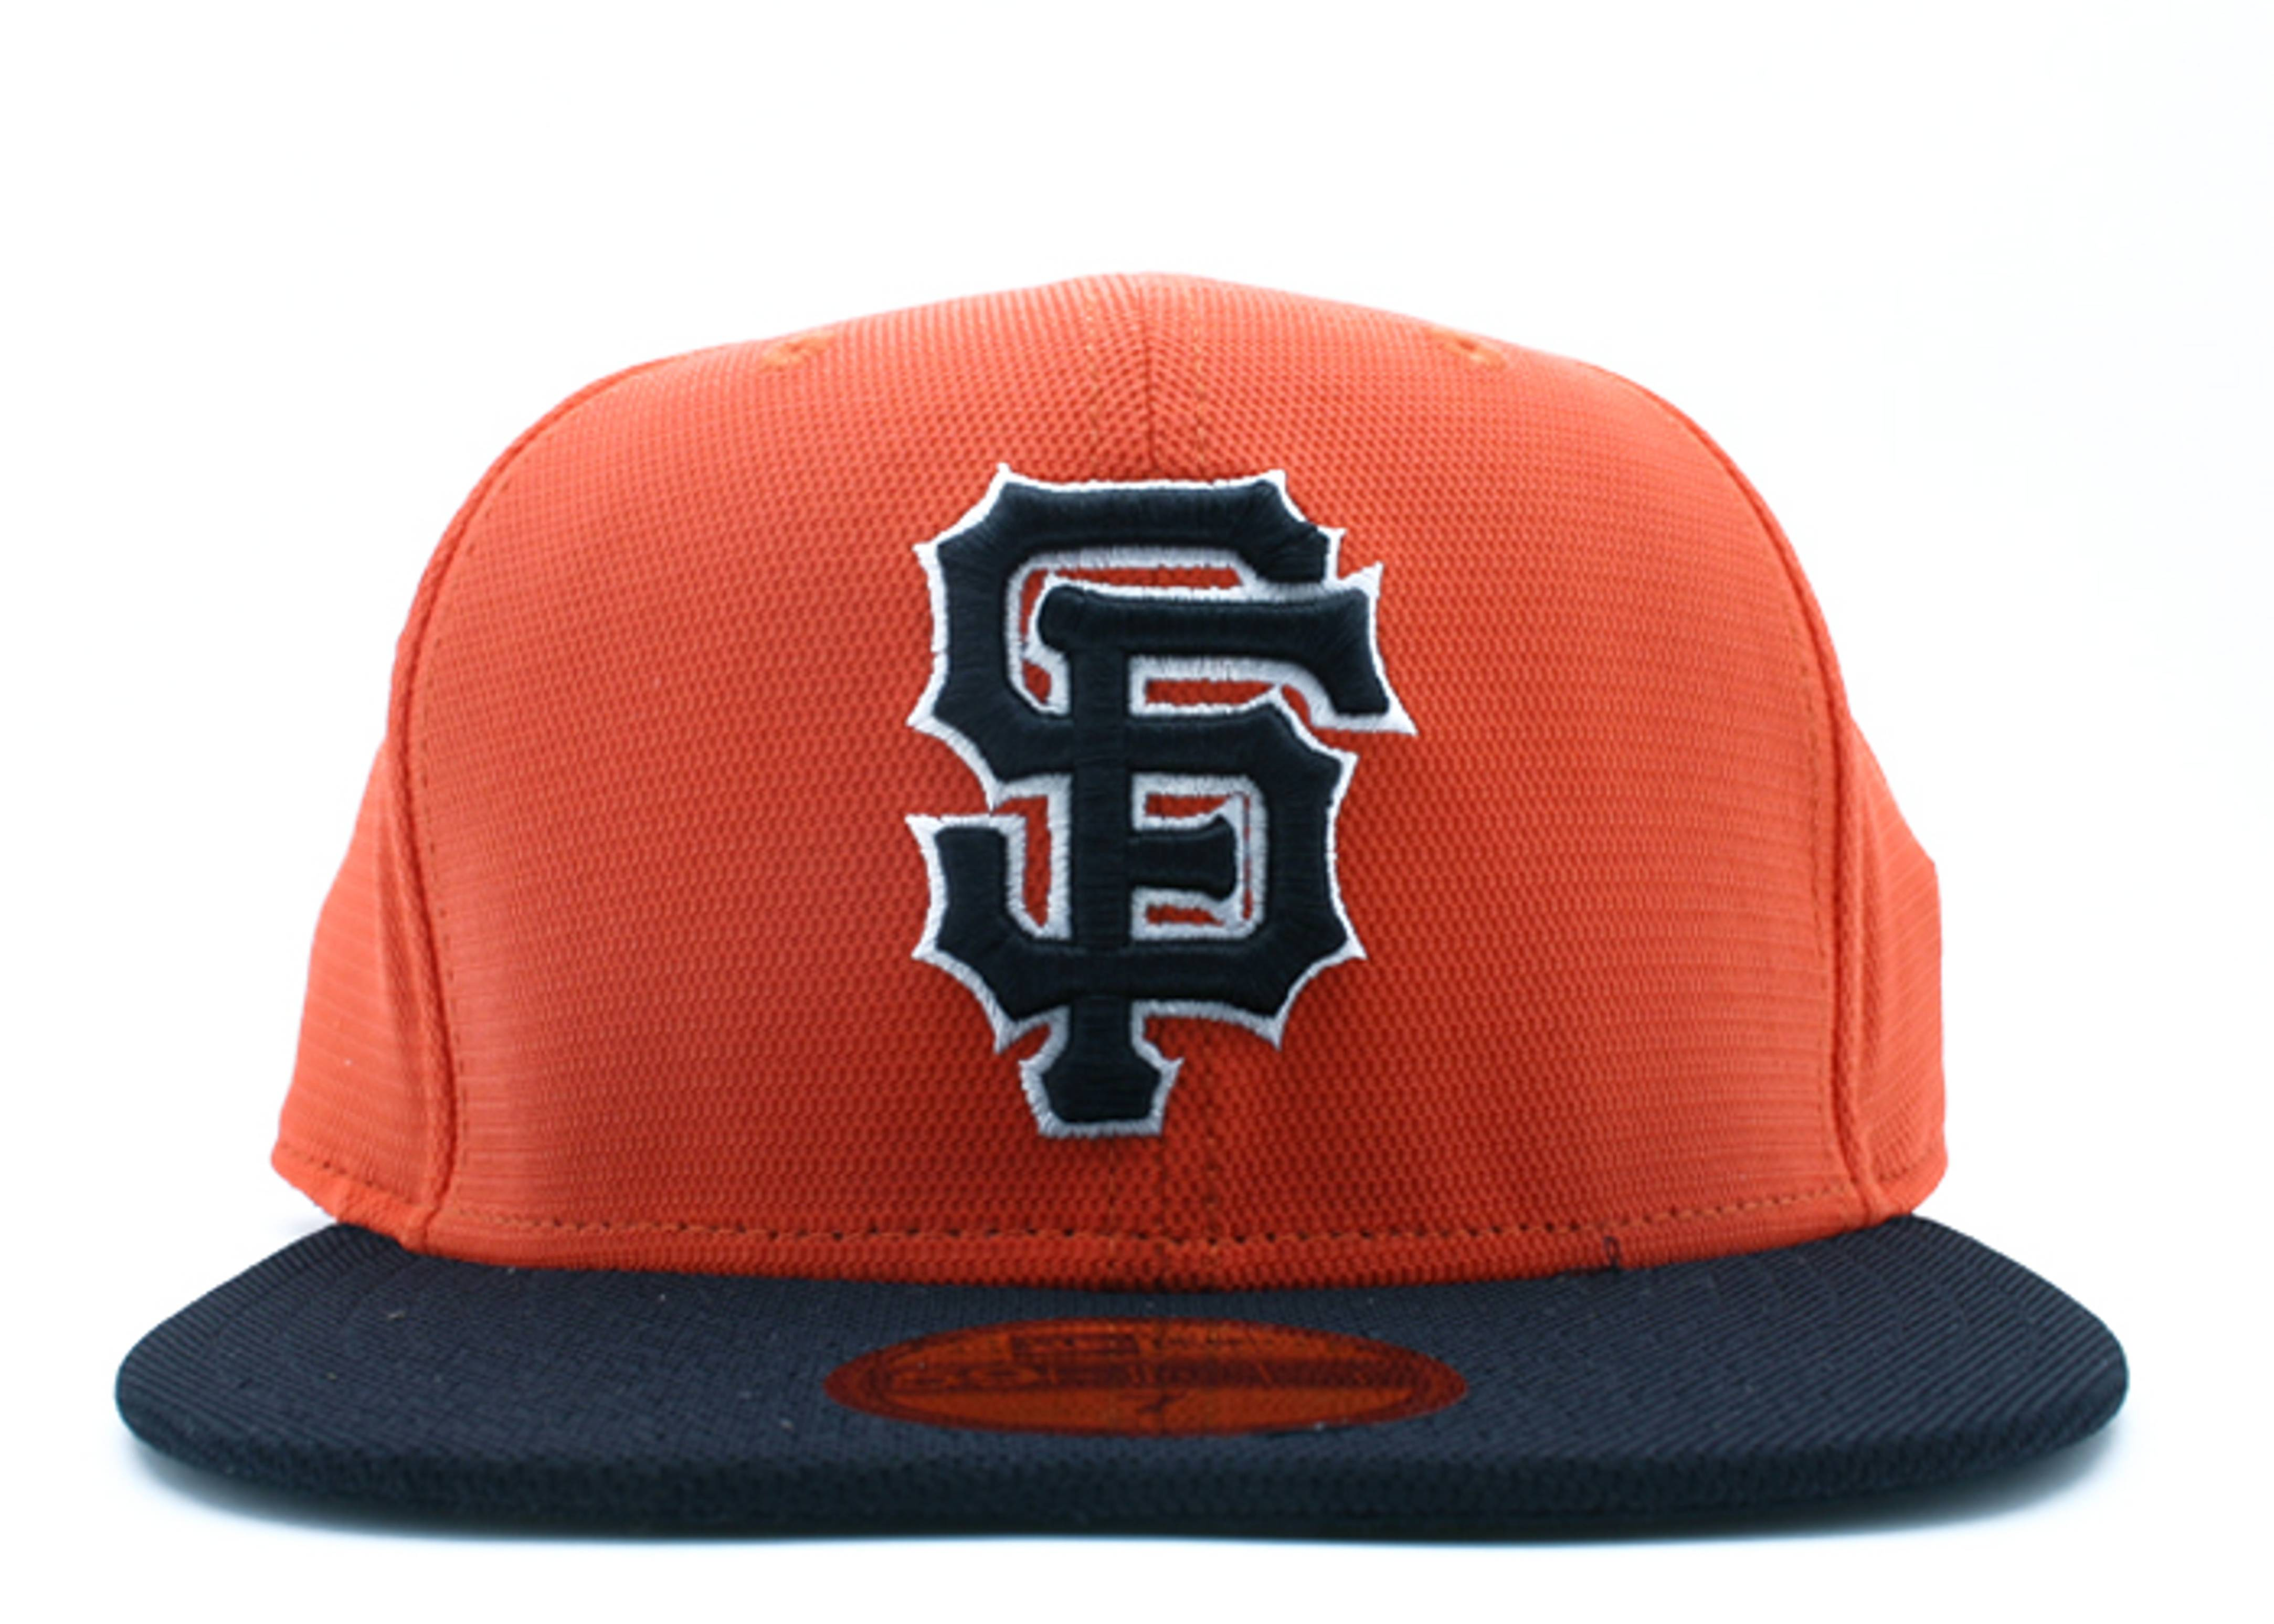 san francisco giants 2tone fitted